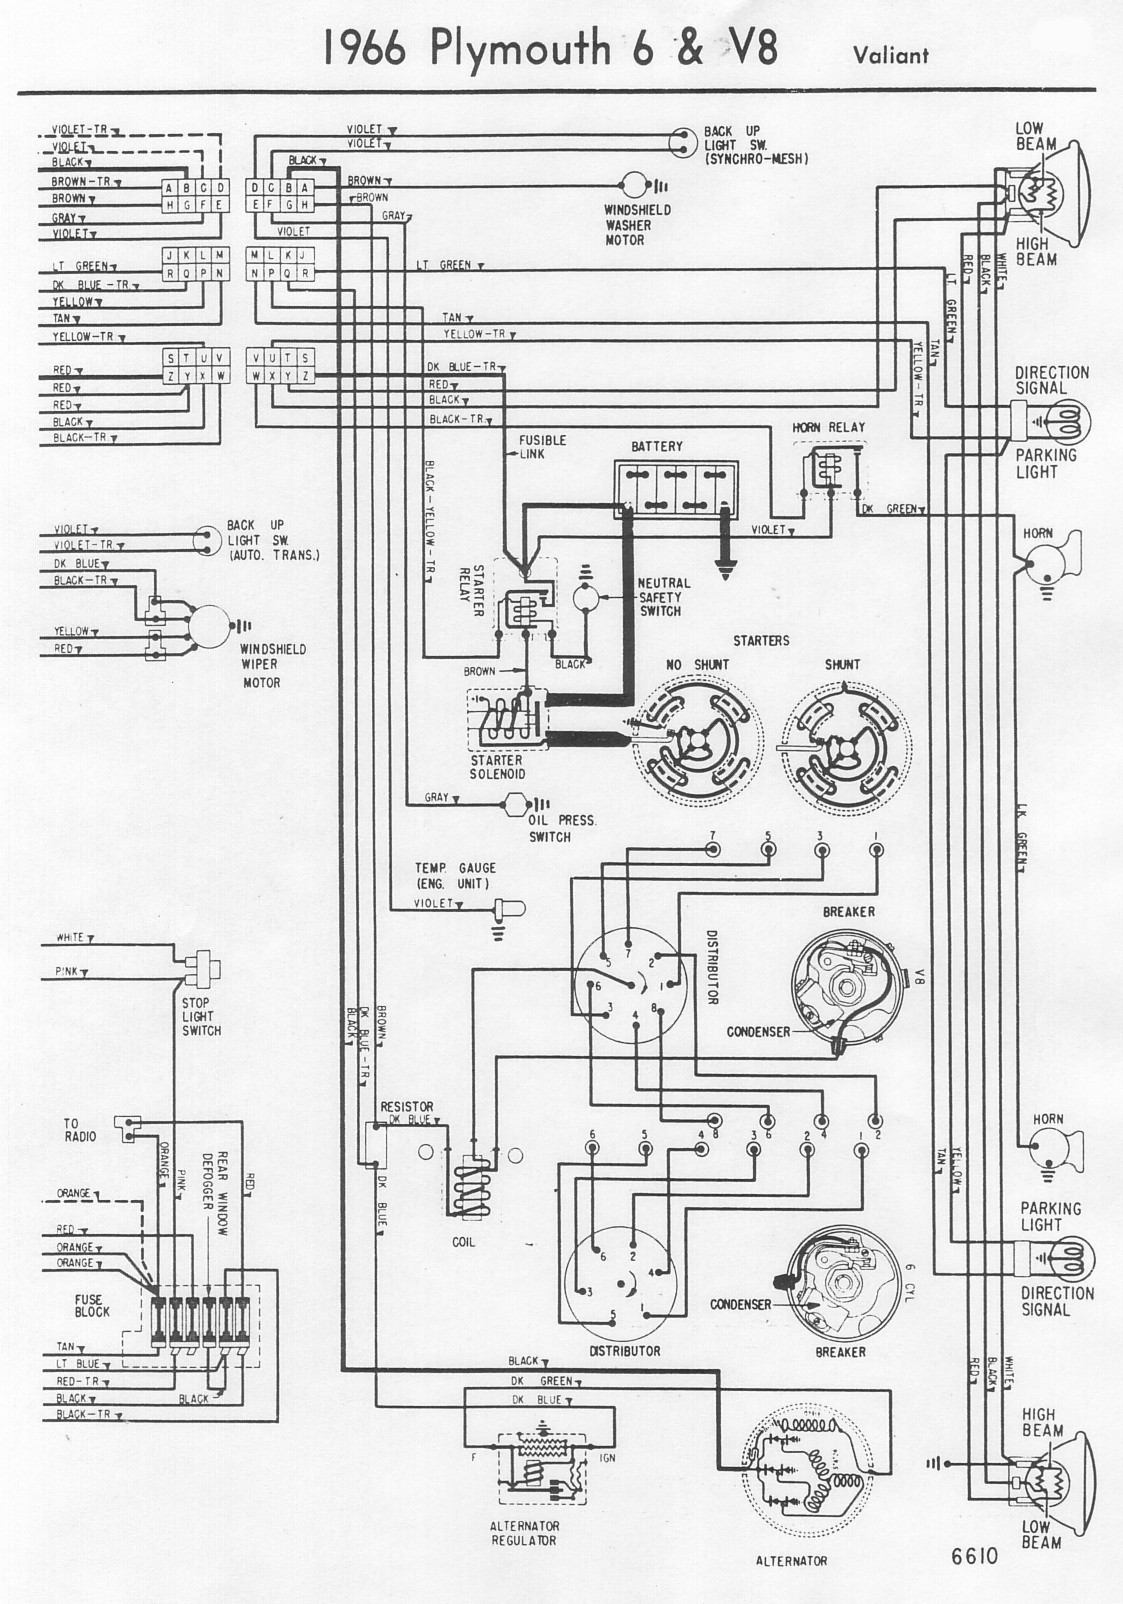 honda crf 50 parts diagram  honda  auto wiring diagram